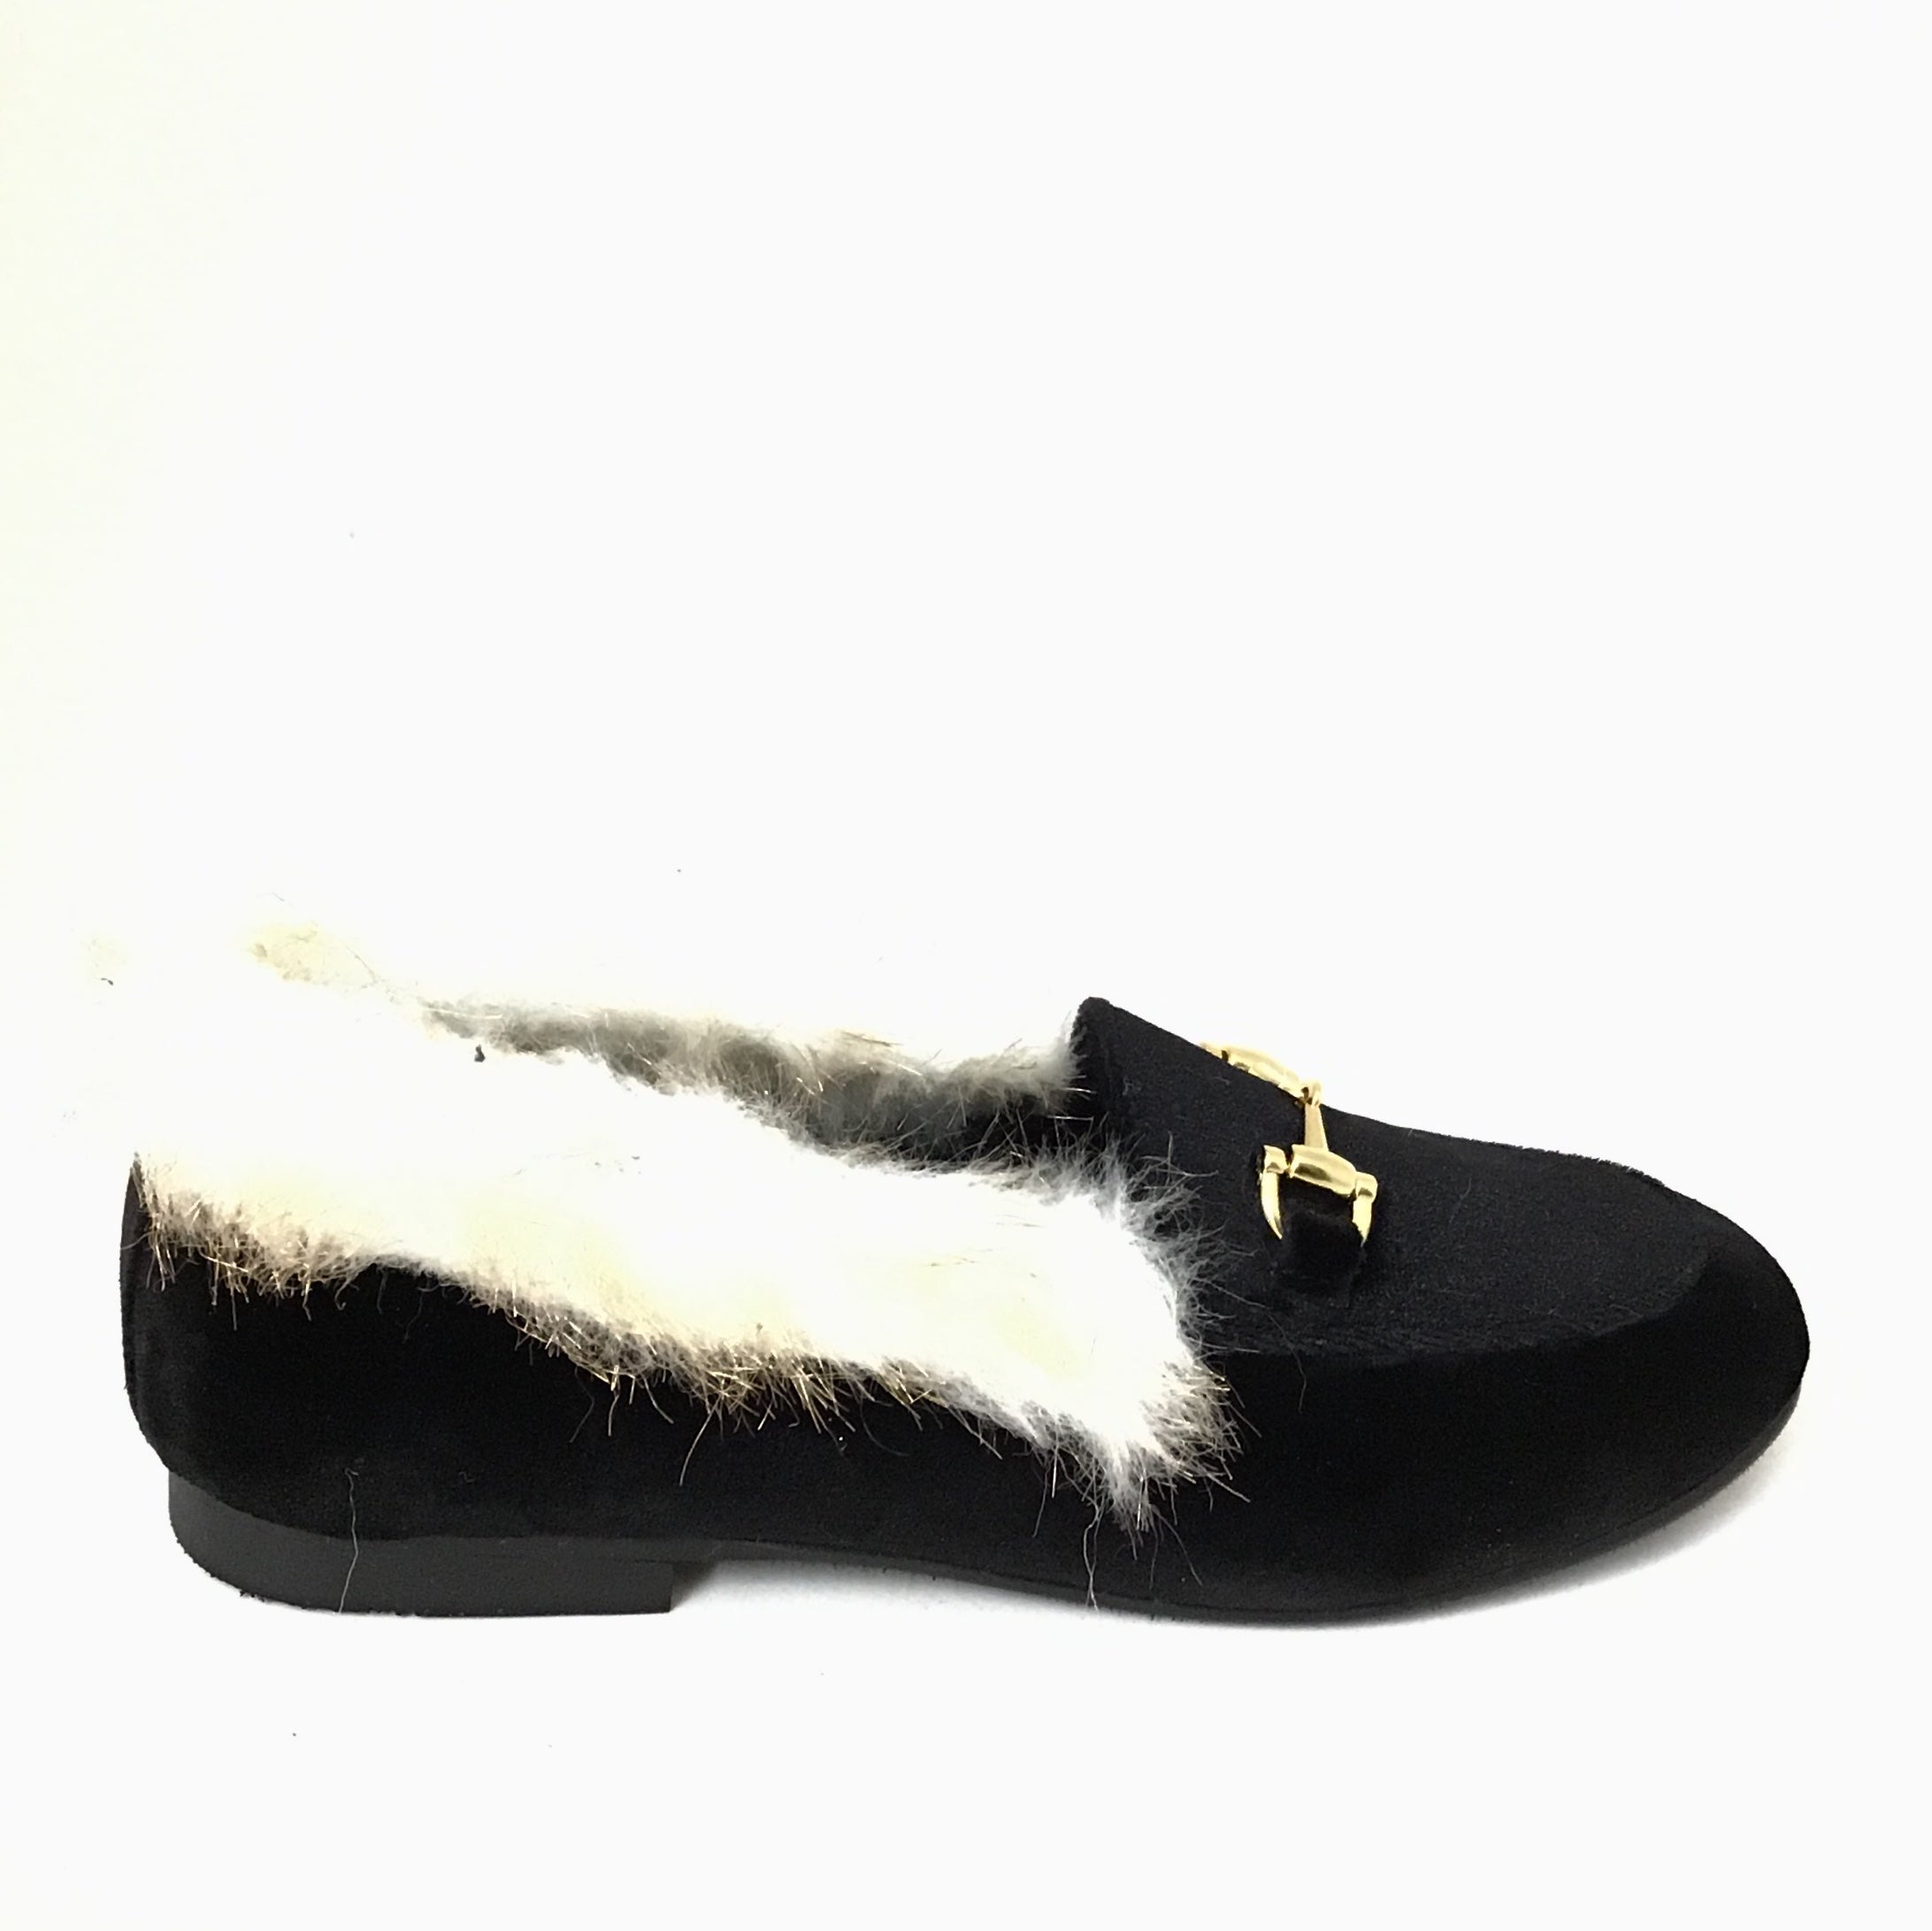 Luccini Black Velvet Slip On with Fur and Chain